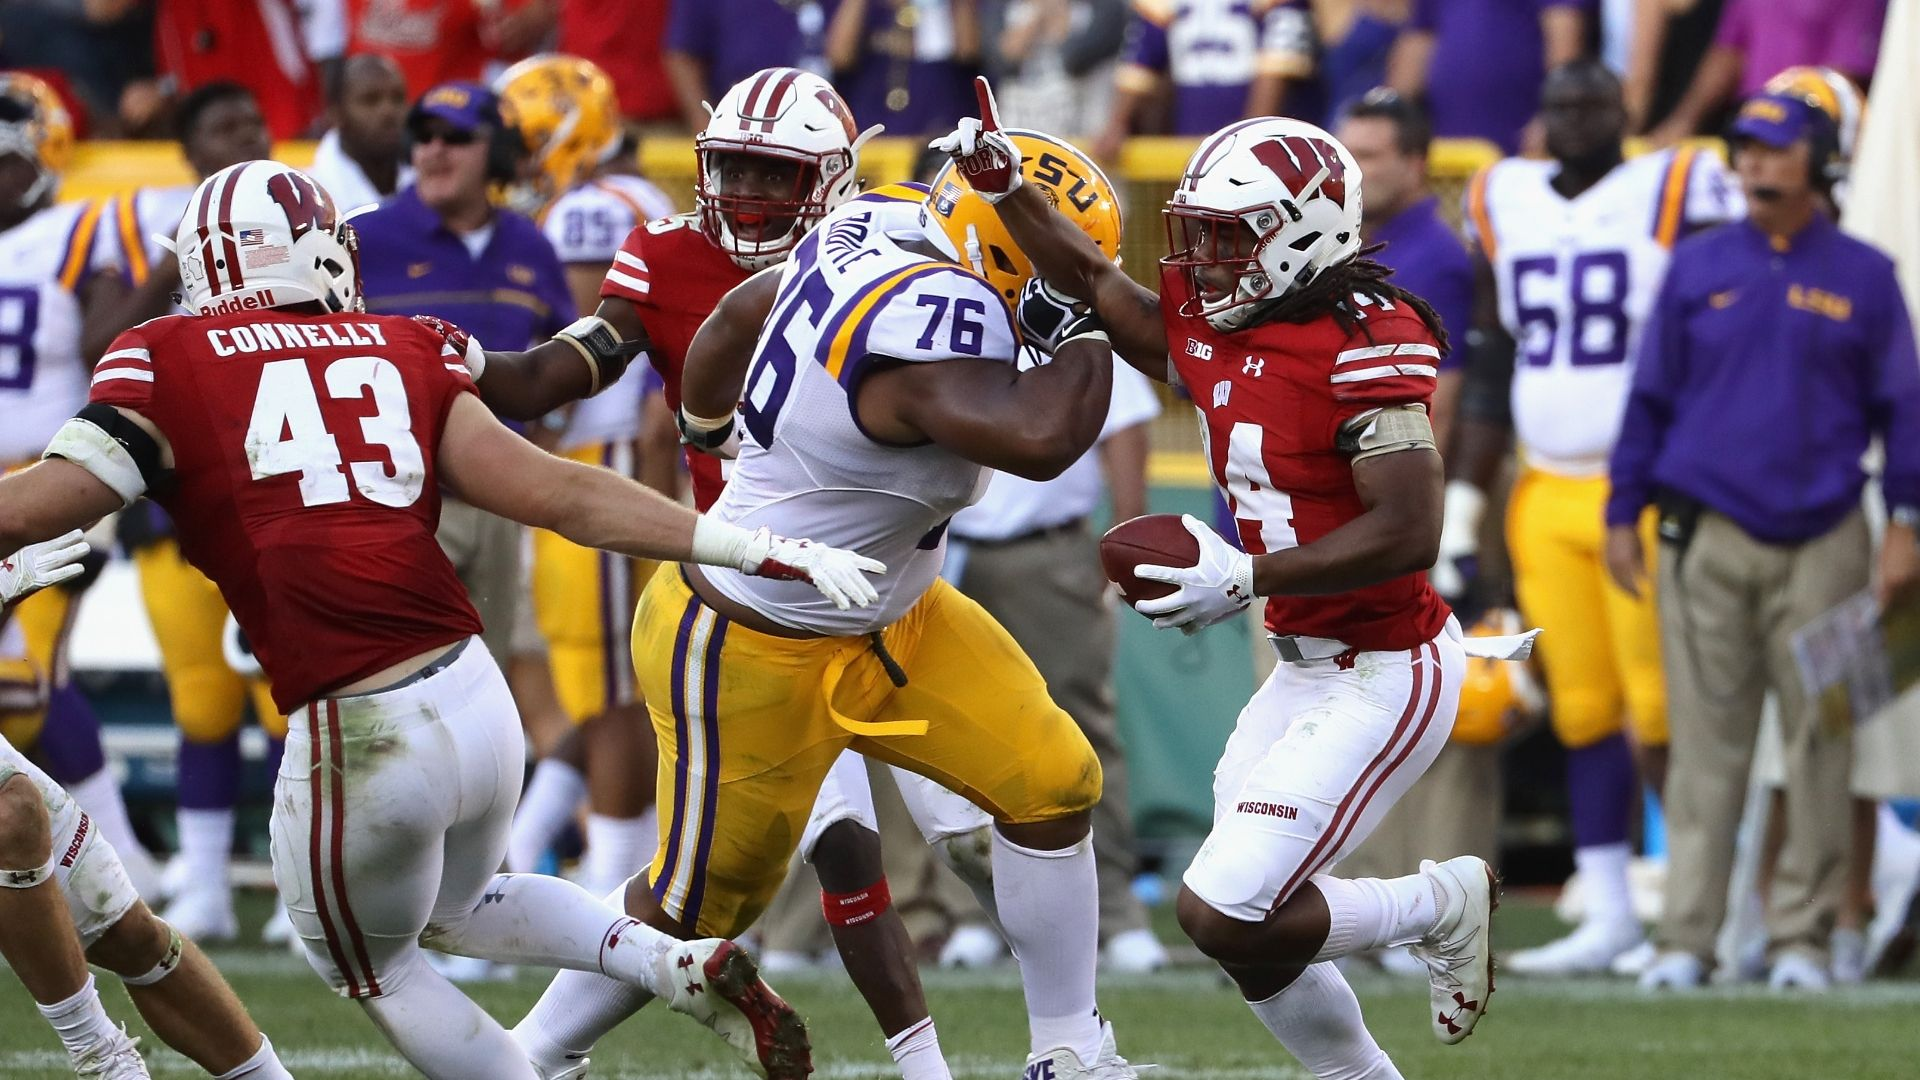 LSU's Boutte ejected after hit following game-sealing INT